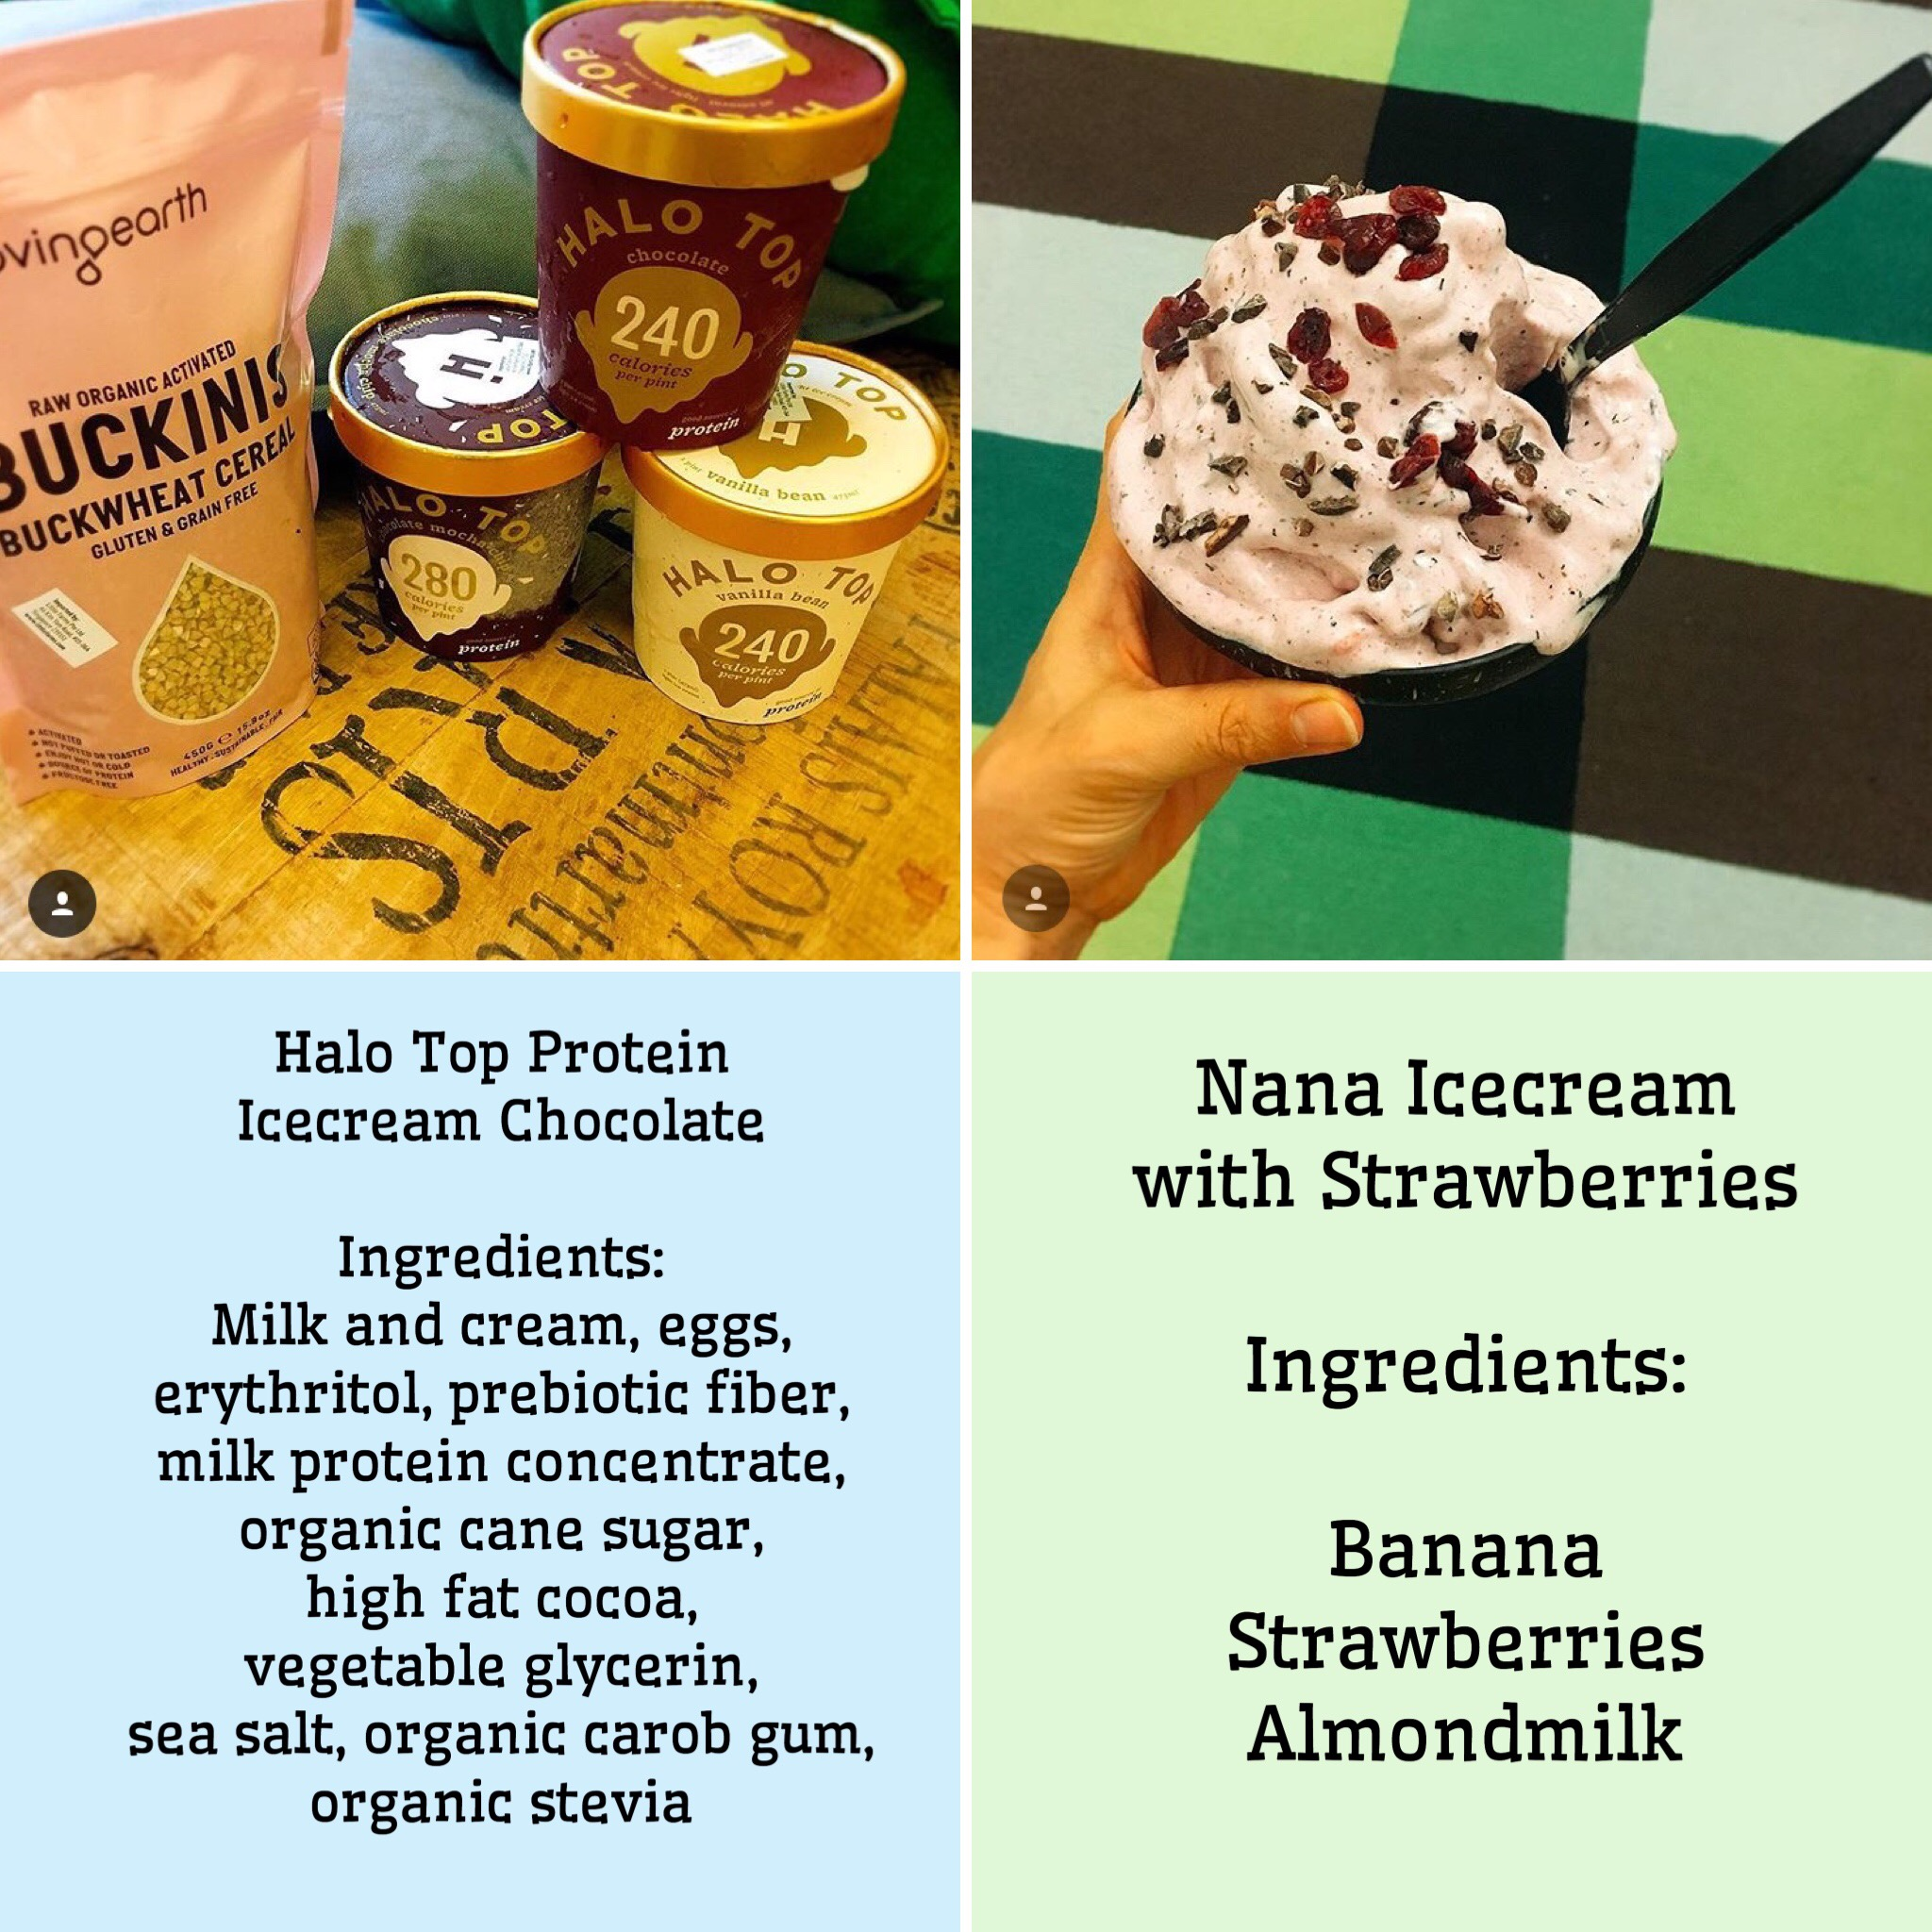 As you can see, the protein ice cream contains artificial sweetener, protein powder and other non-real food. The nana ice cream on the other hand has just three ingredients our body can work with.